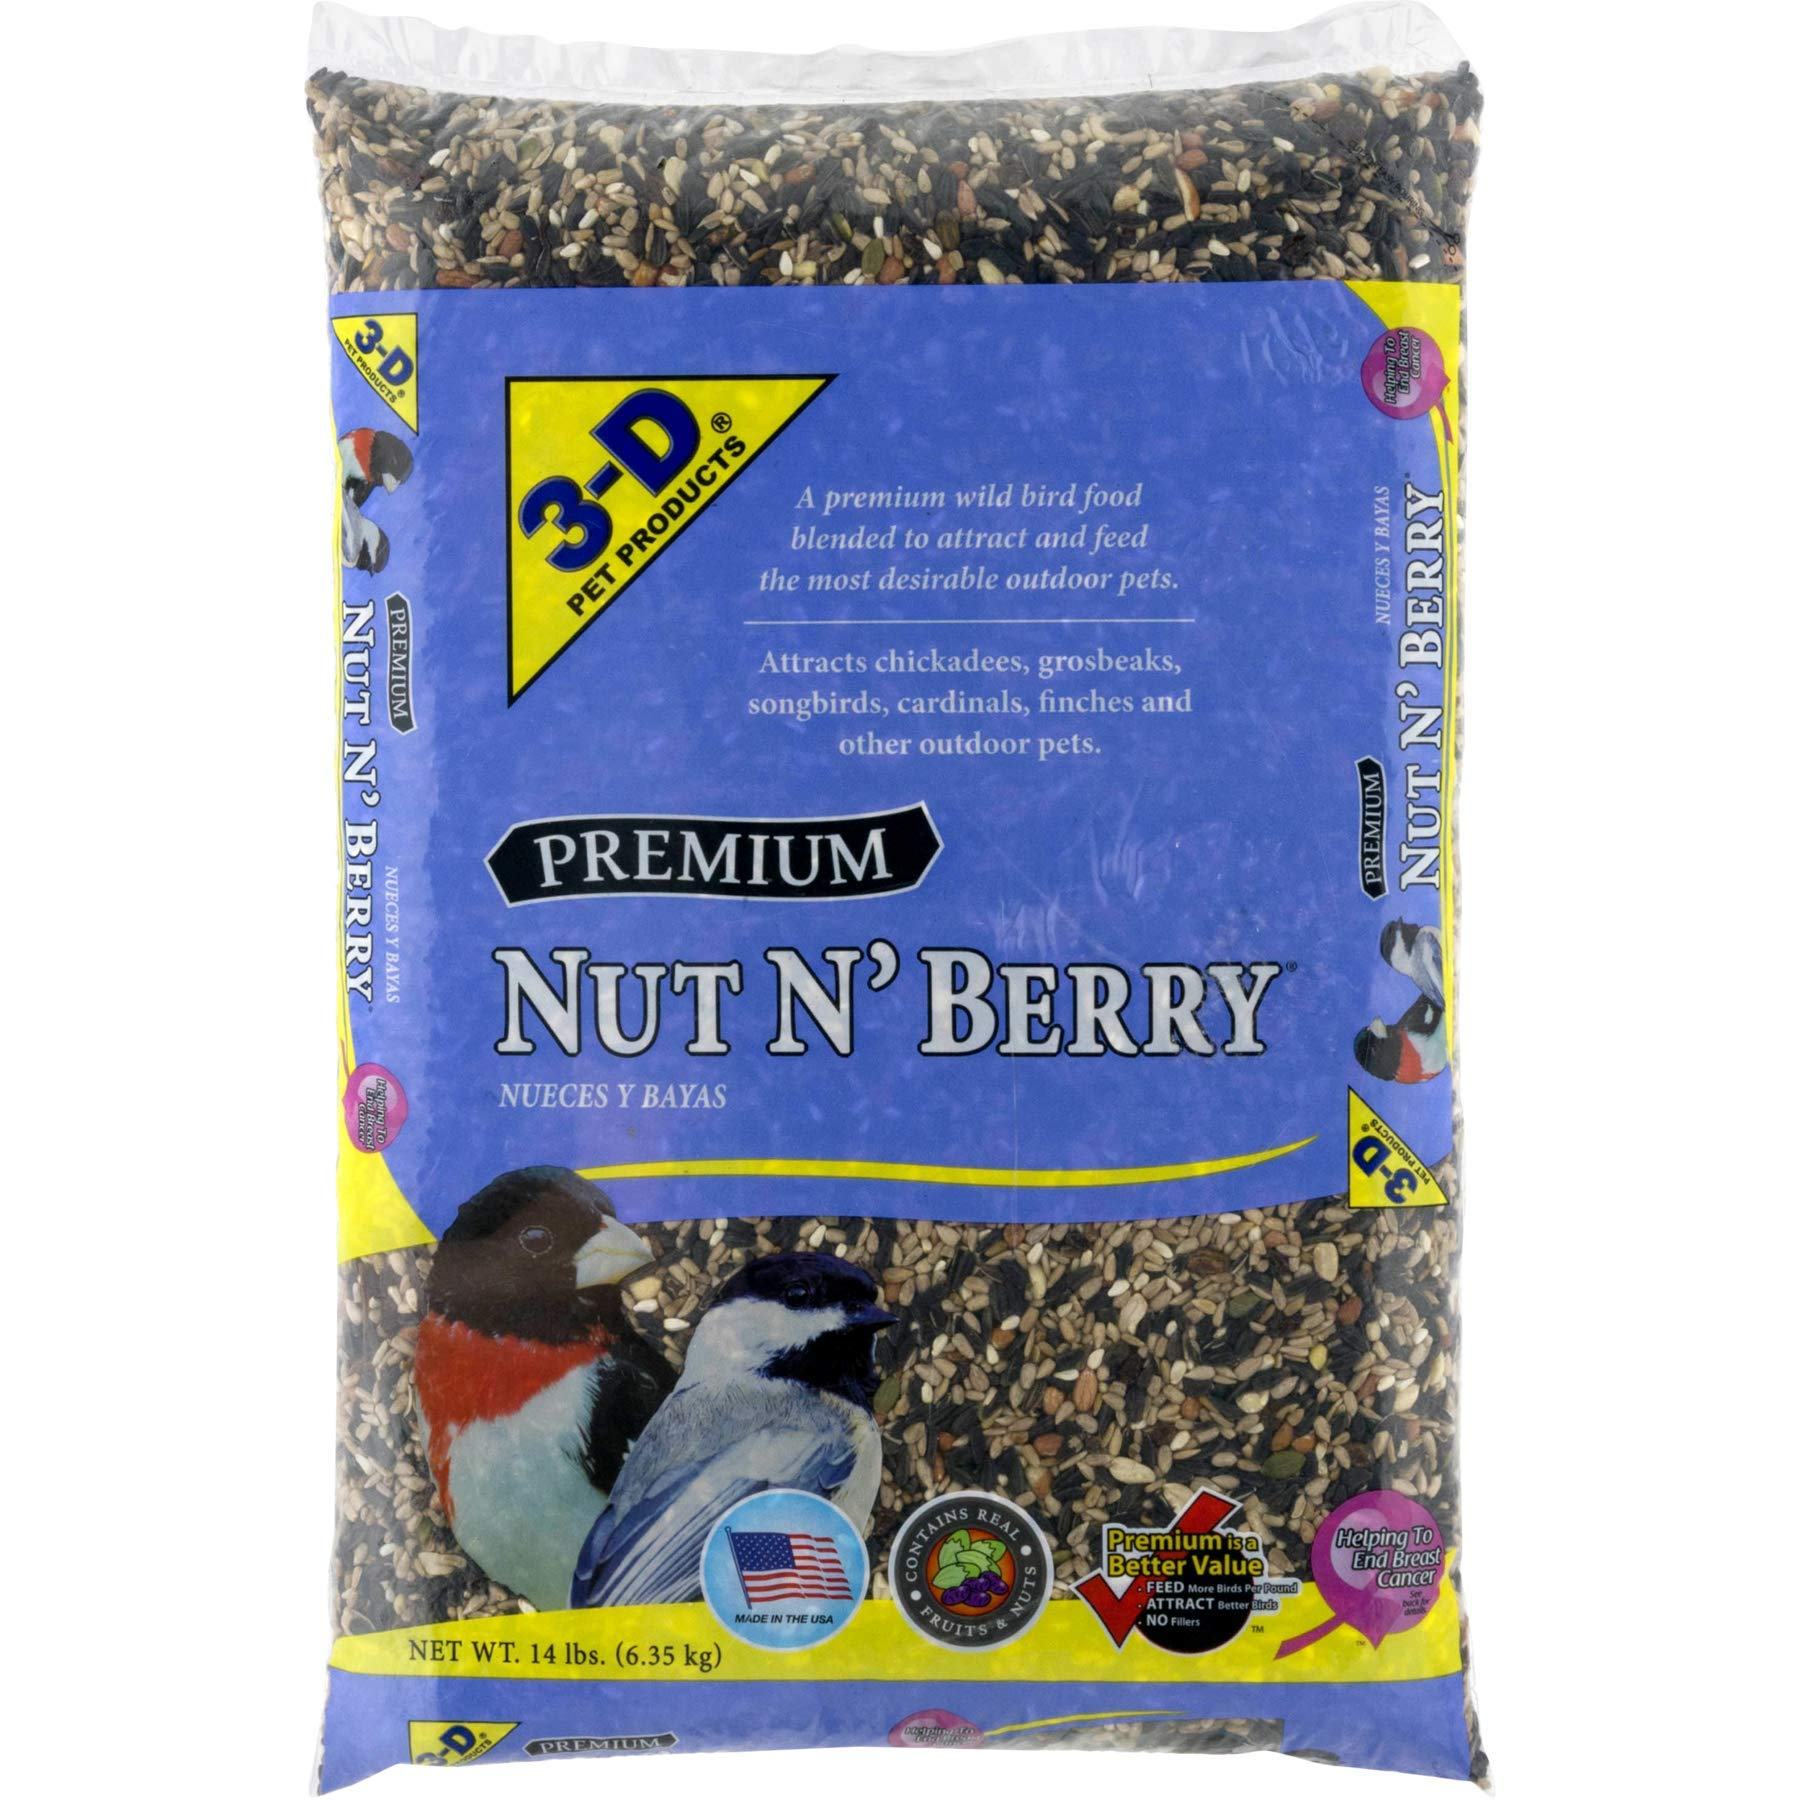 3-D Pet Products Premium Nut N' Berry Dry Wild Bird Food, 14 LB by Pet D